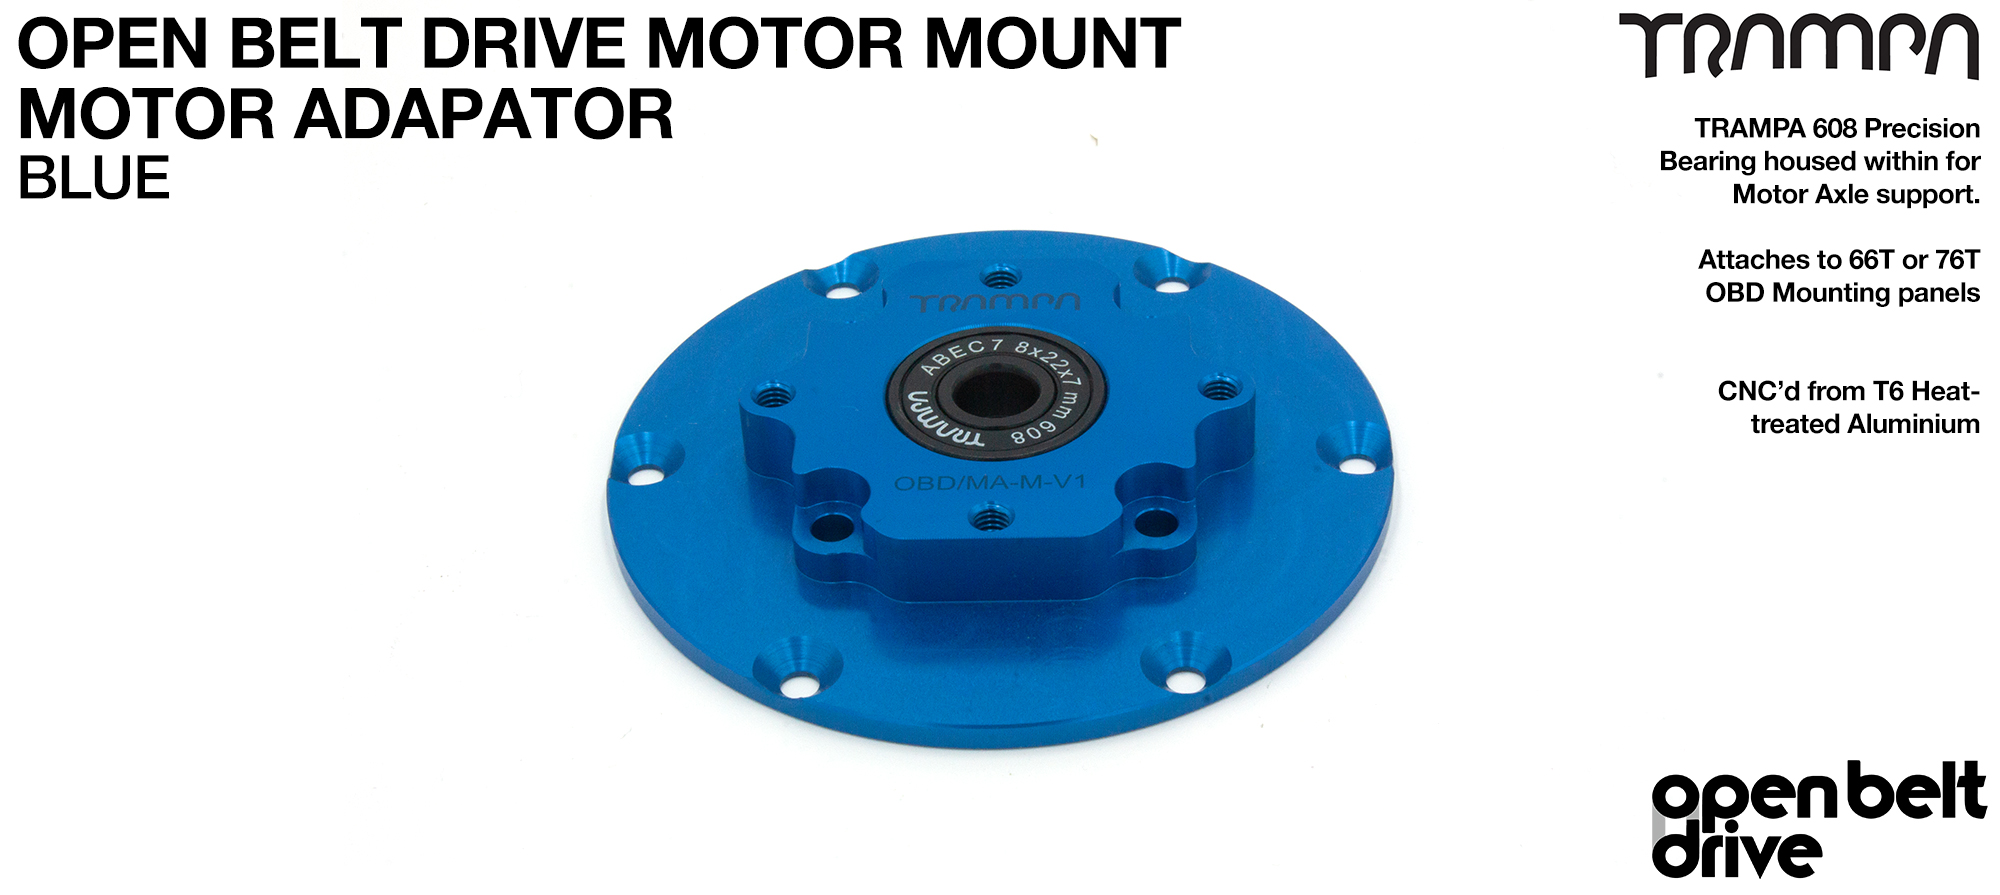 BLUE OBD Motor Adaptor with Housed Bearing